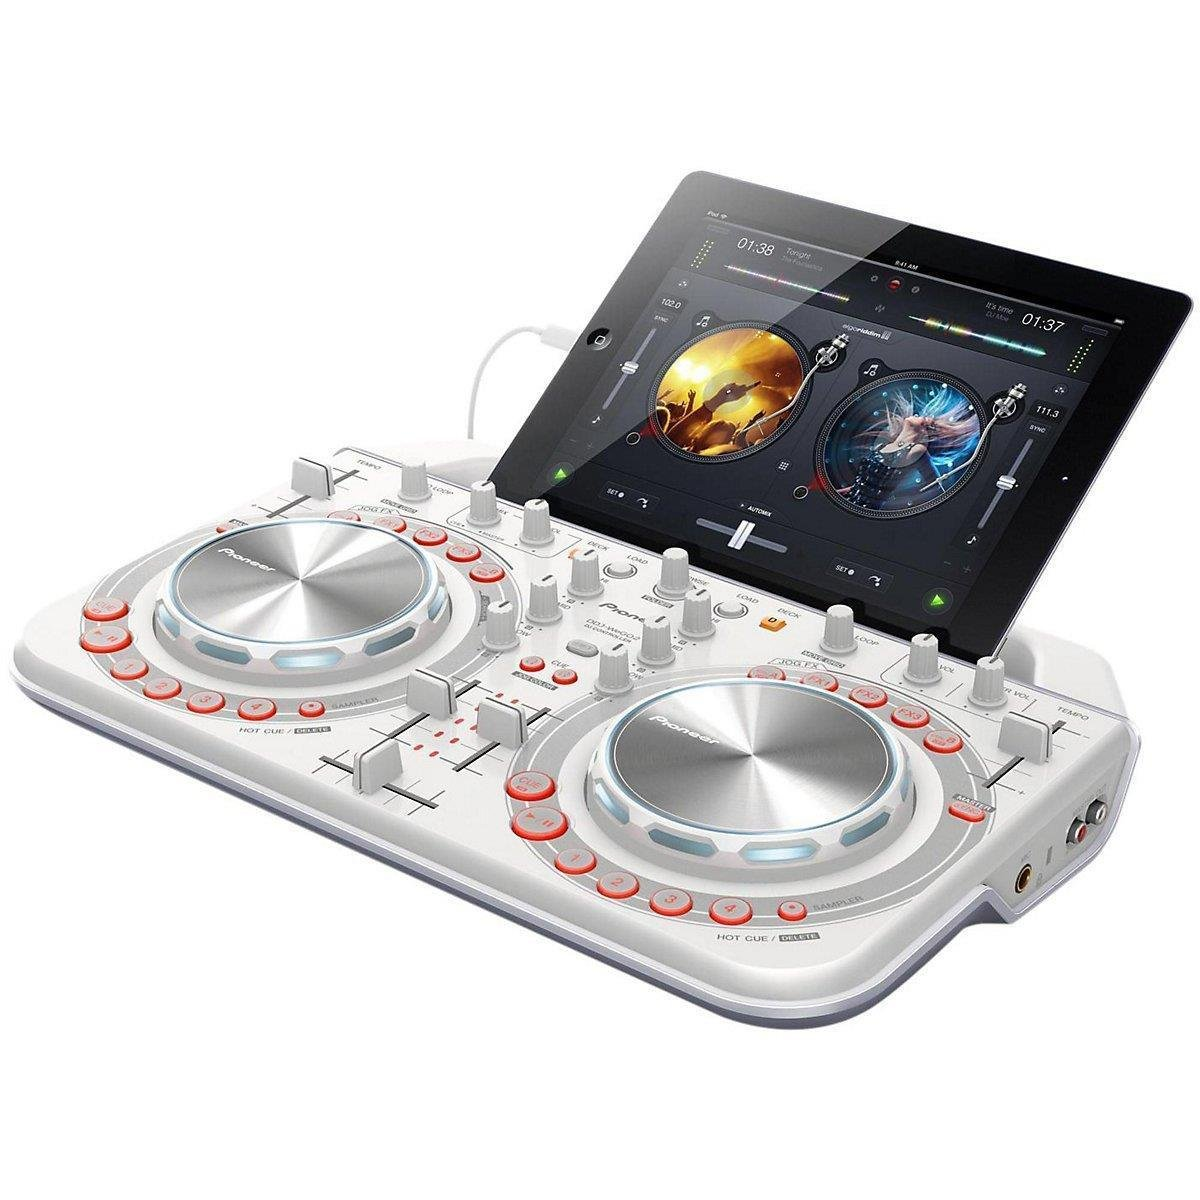 top 10 best ultimate all in one dj controllers reviews 2018 2019 on flipboard by topsee. Black Bedroom Furniture Sets. Home Design Ideas